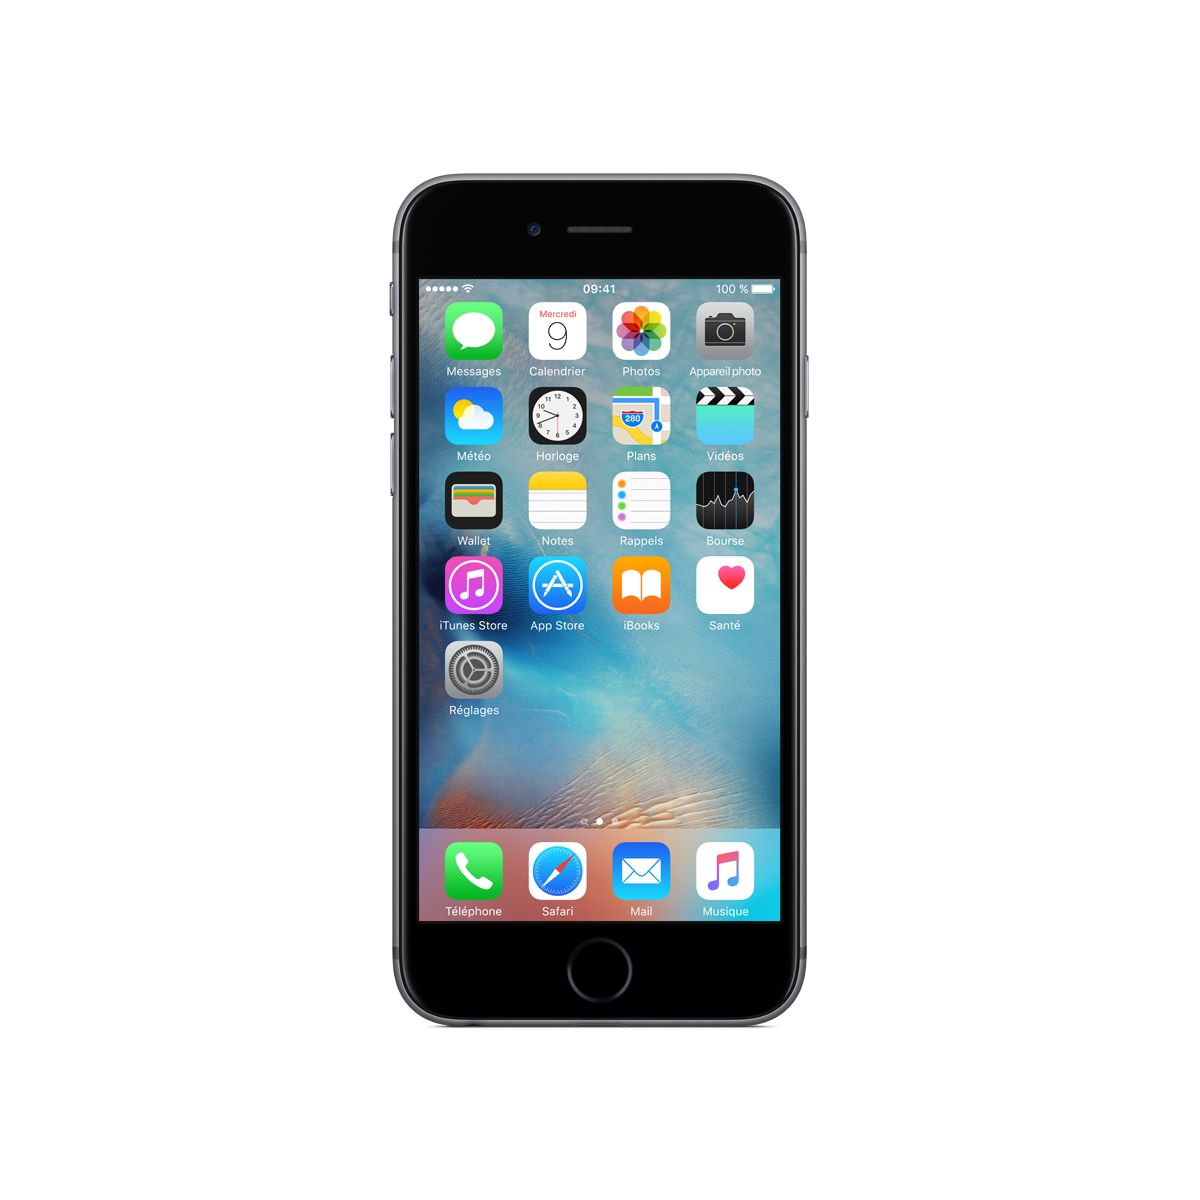 iphone iphone 6s space gray 16go apple. Black Bedroom Furniture Sets. Home Design Ideas